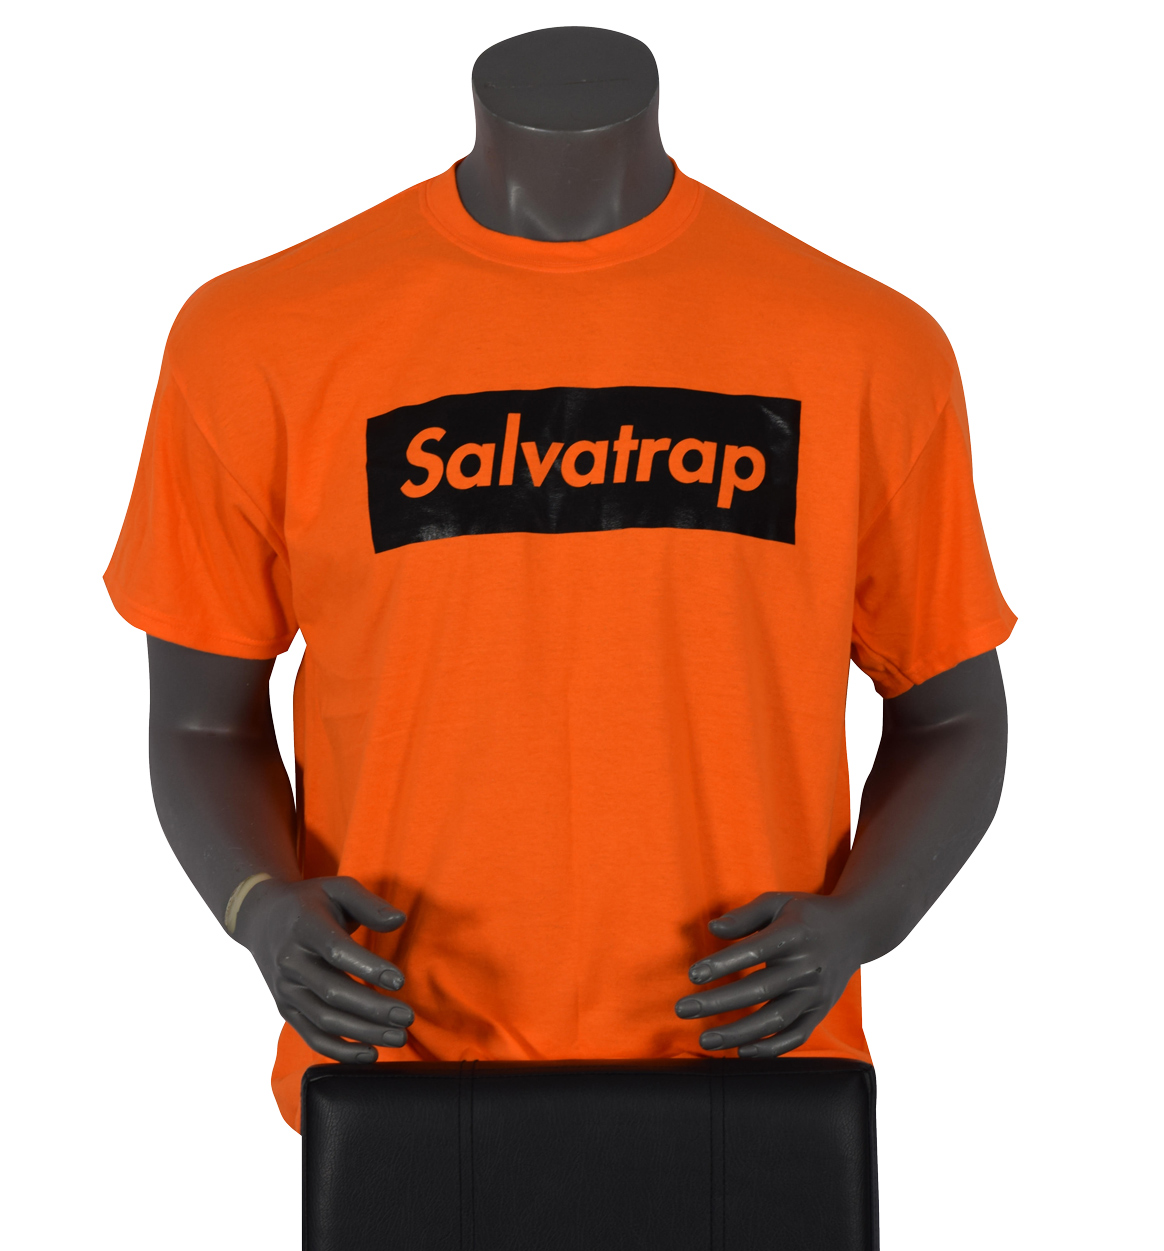 SALVATRAP – TSHIRT ORANGE